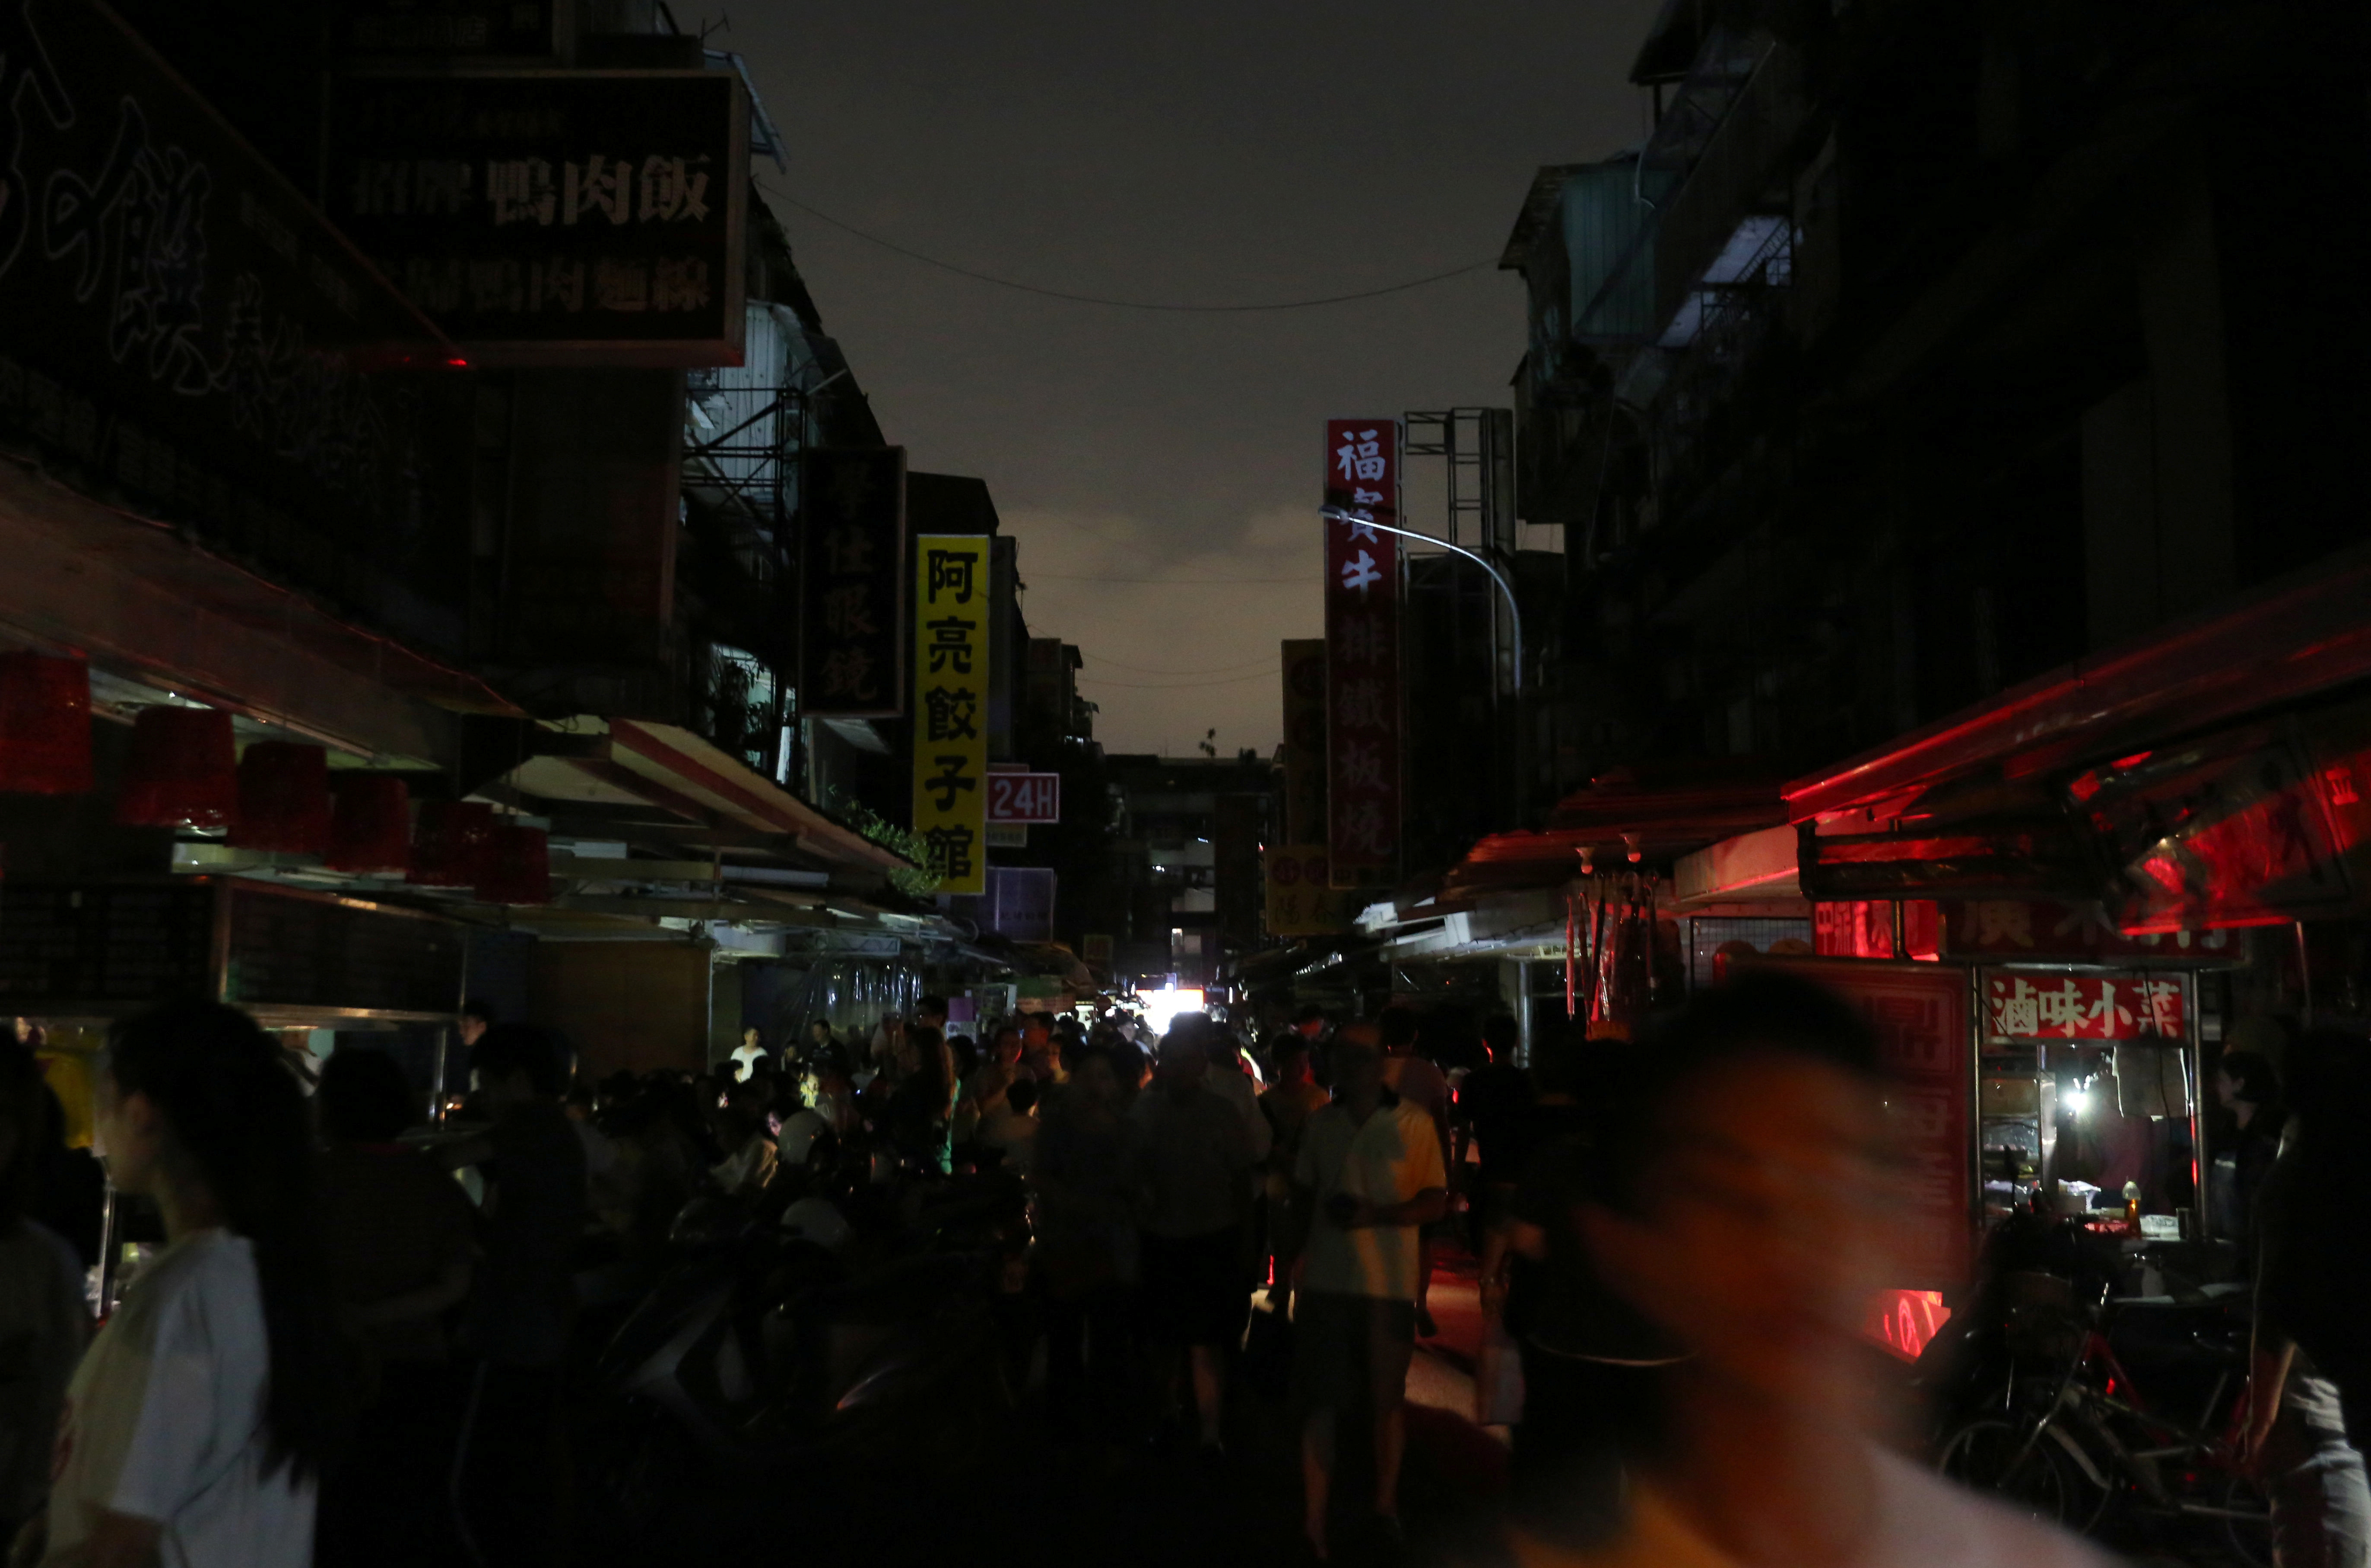 People walk on a street during a massive power outage in Taipei, Taiwan August 15, 2017.